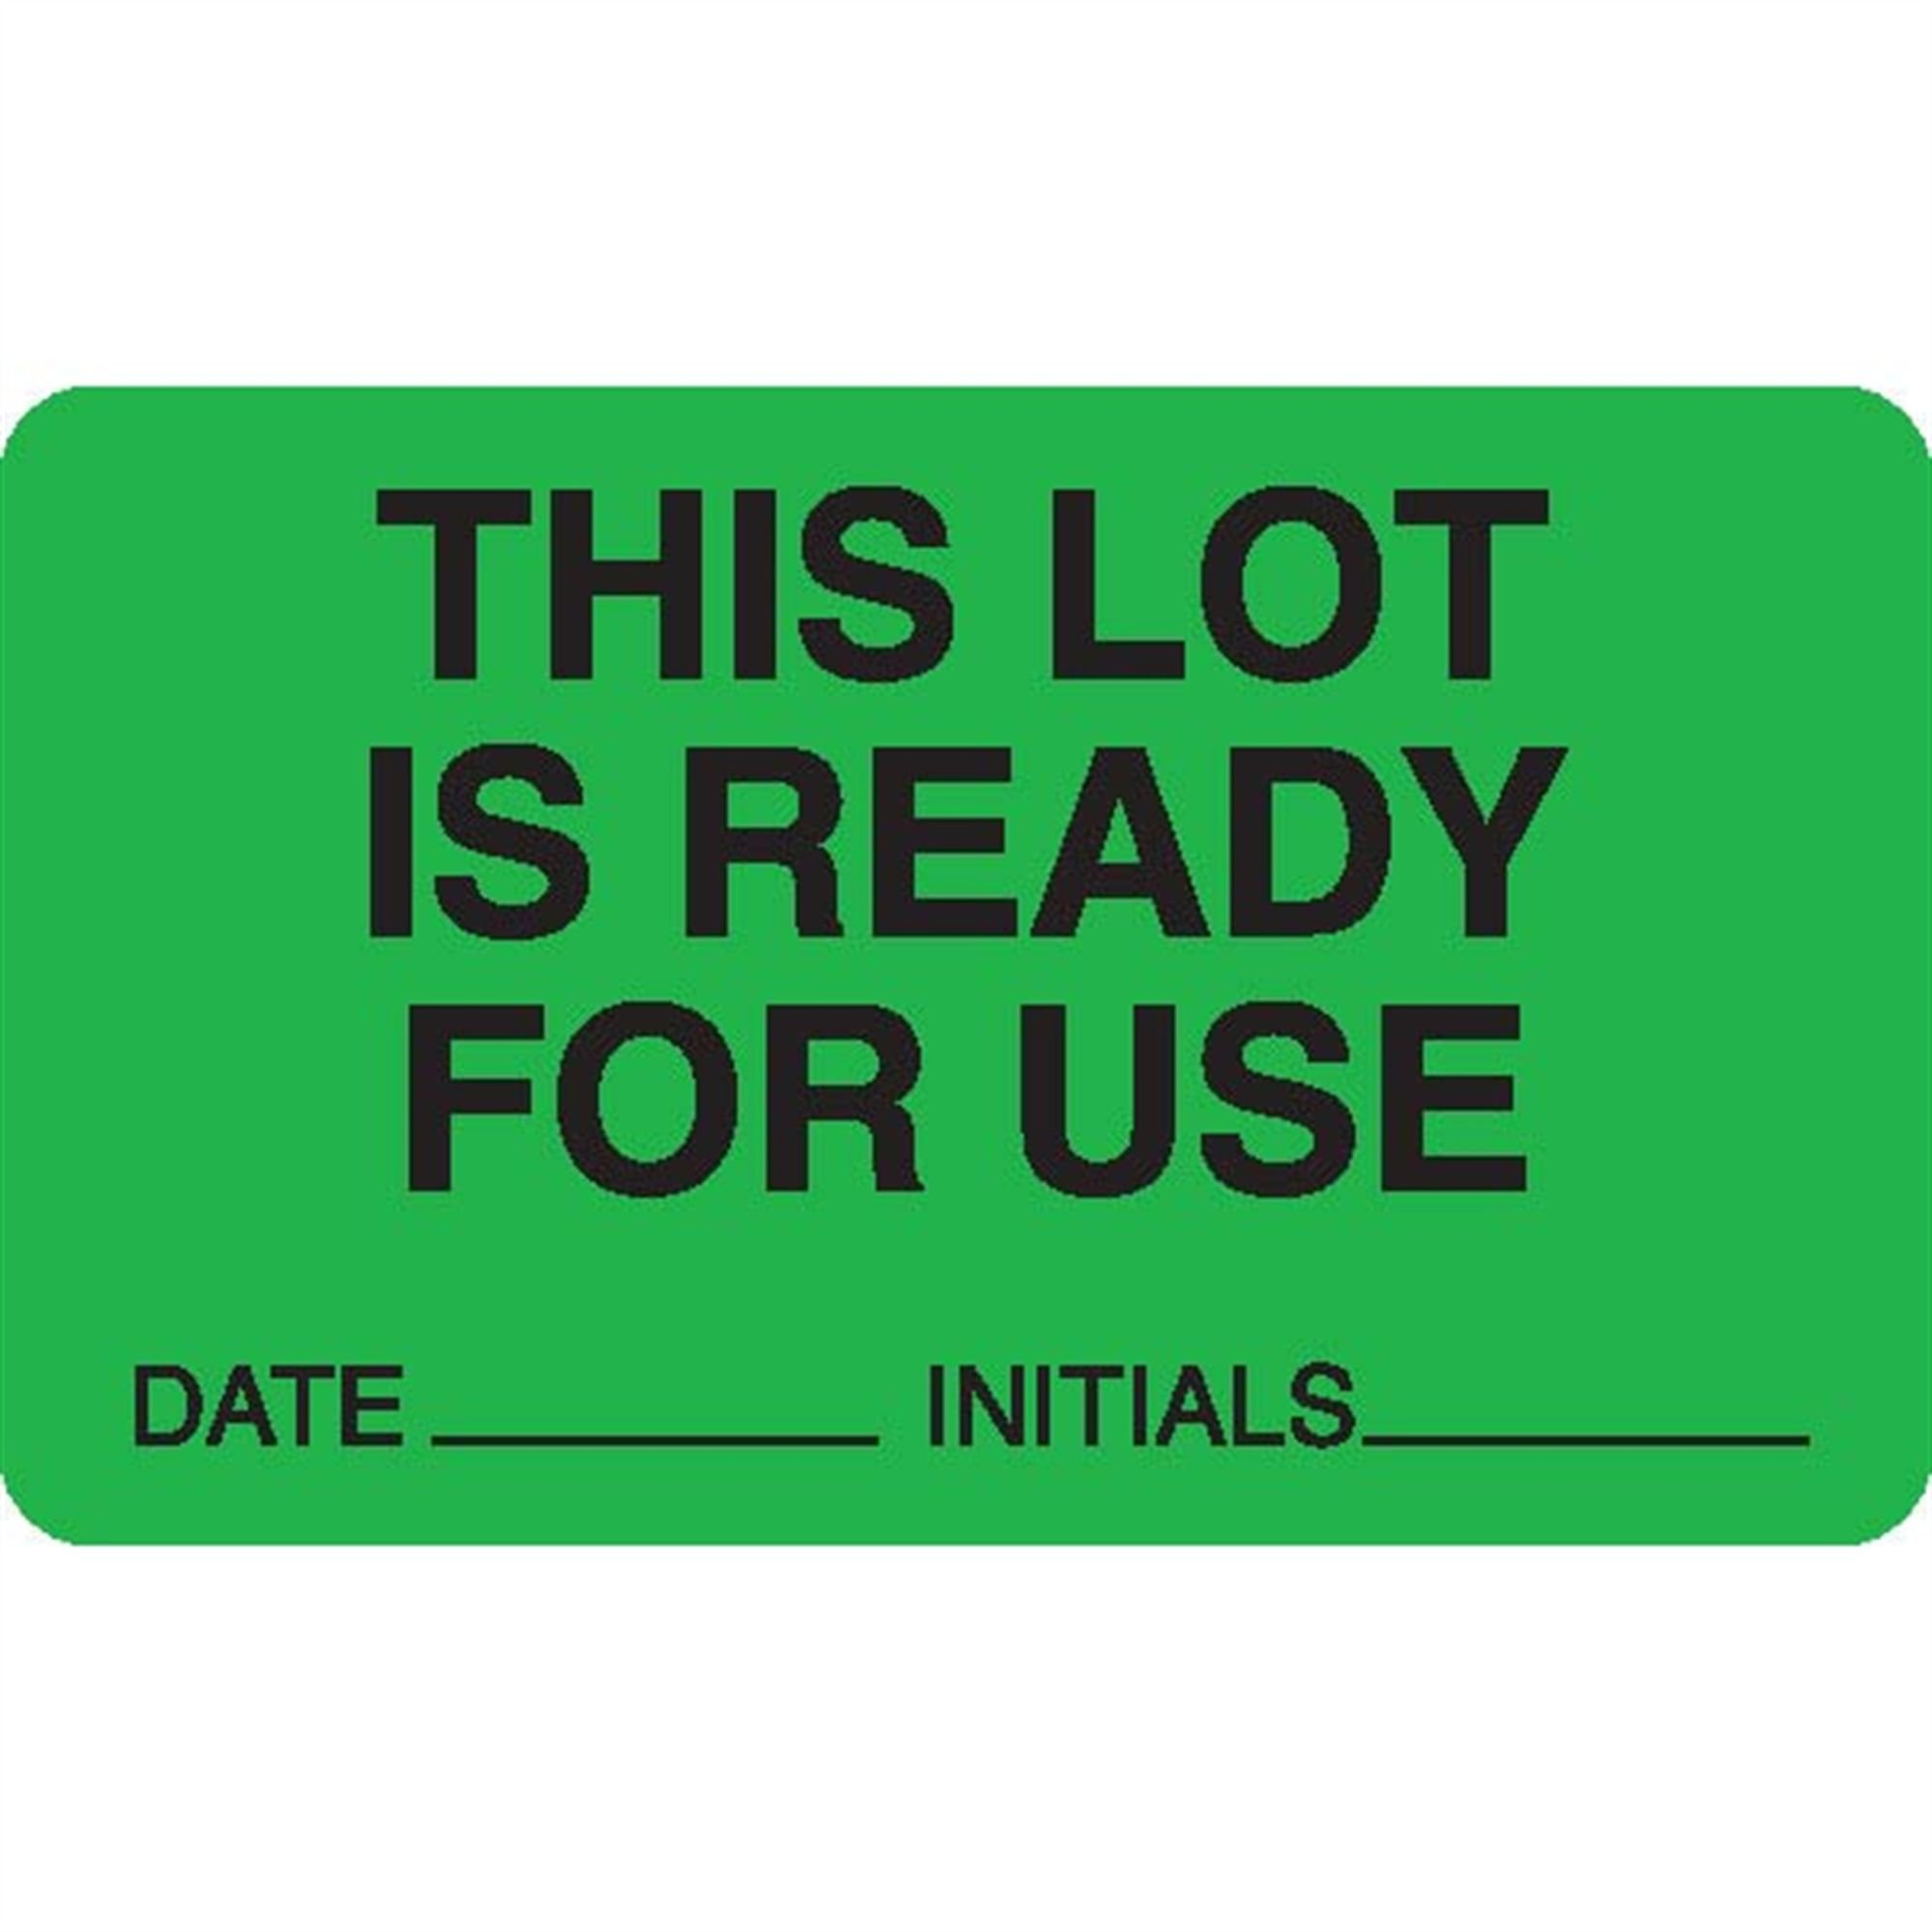 Lot Signal Labels in Blister Packs''THIS LOT IS READY FOR USE DATE_ INIT_'' Green with black text 2.5''W x 1.5''H